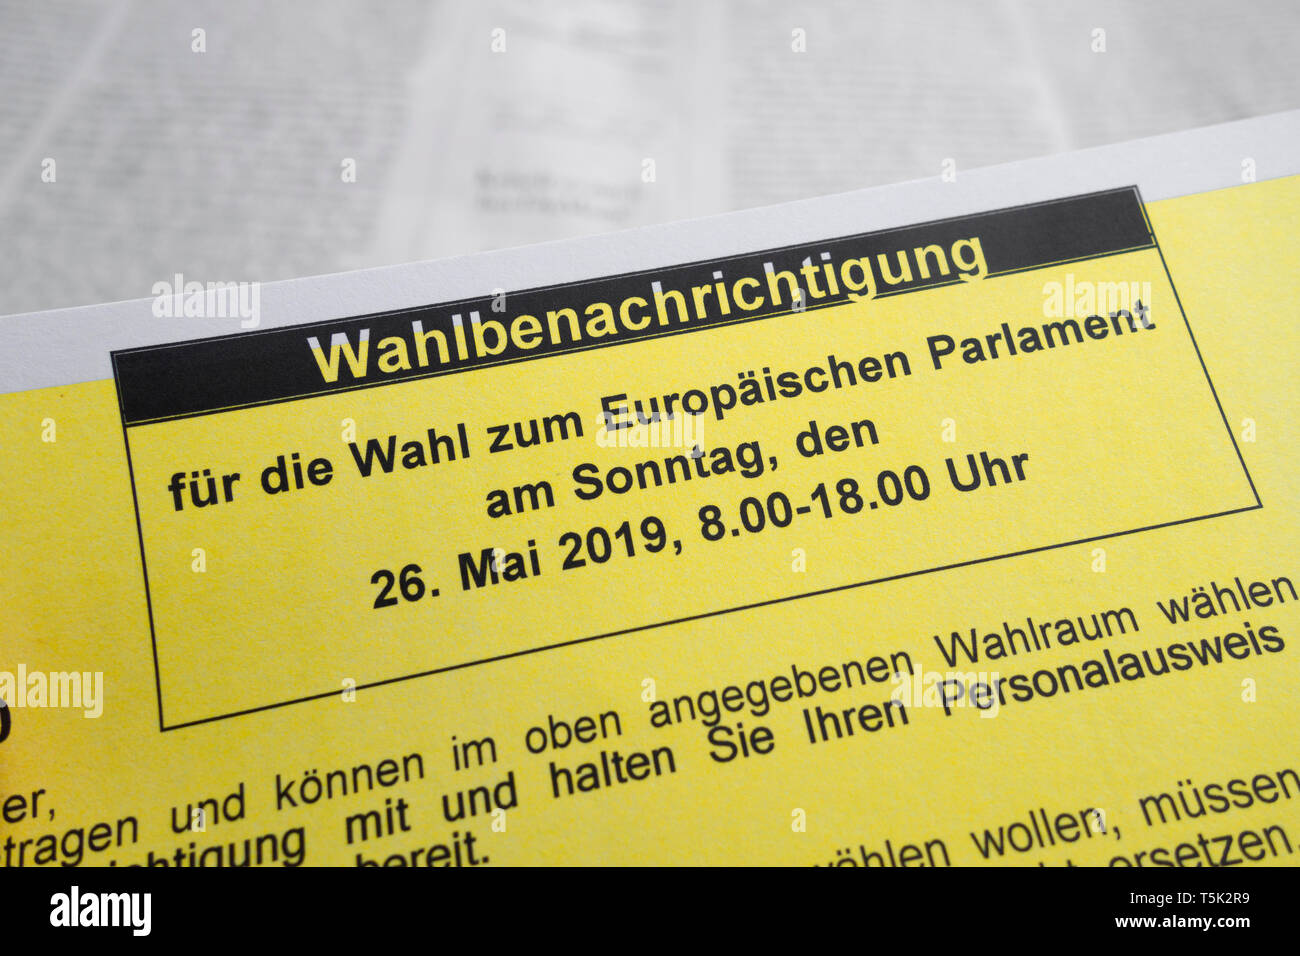 Election notification for the election to the European Parliament on Sunday, 26 May 2019. - Stock Image